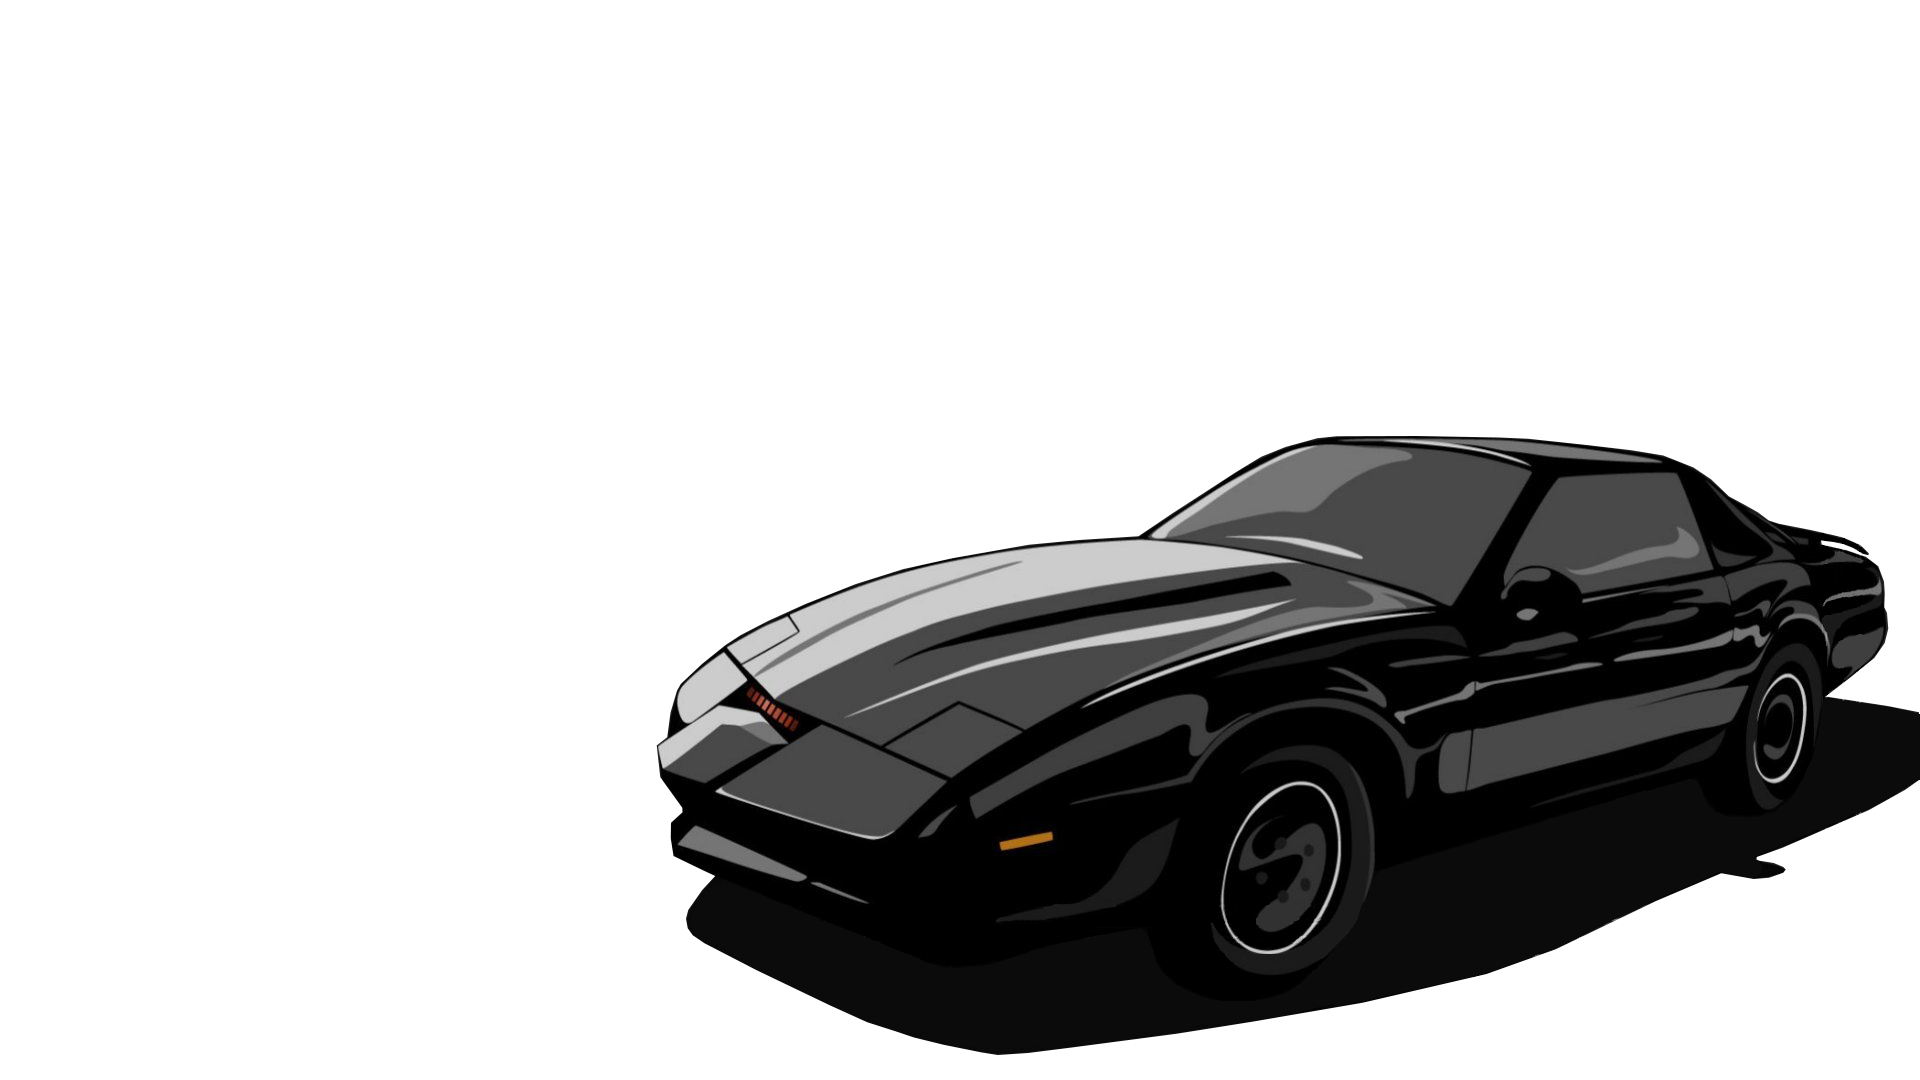 knight rider wallpaper HD 1920x1080